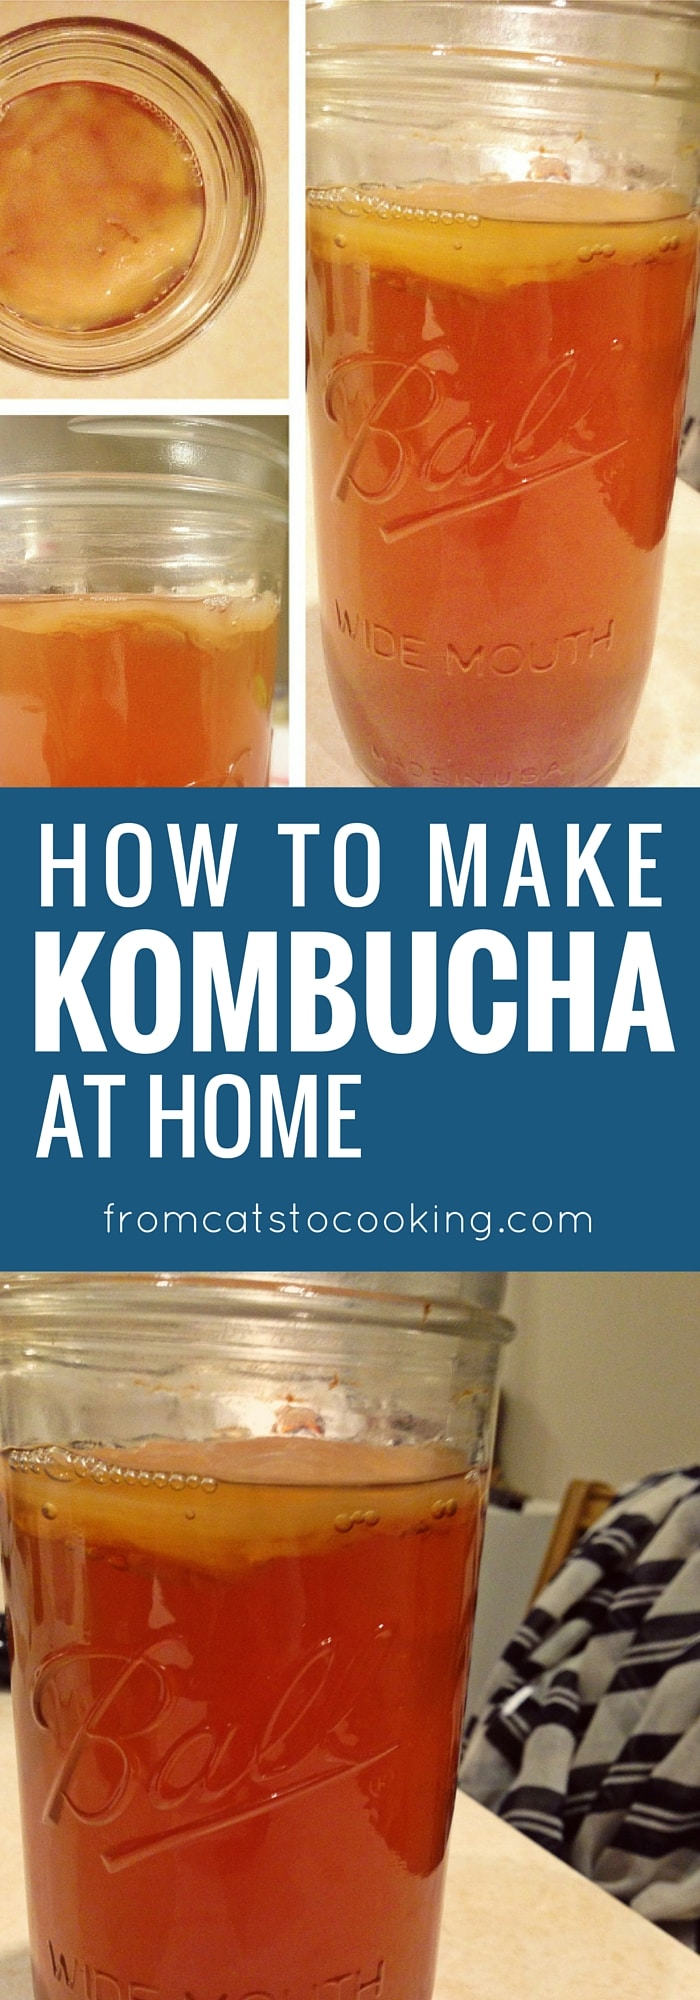 How to Make Kombucha - a tasty probiotic-rich drink that will totally kick your soda habit out the window. It's so good! Click through to learn how to make some for yourself or save this pin for later.